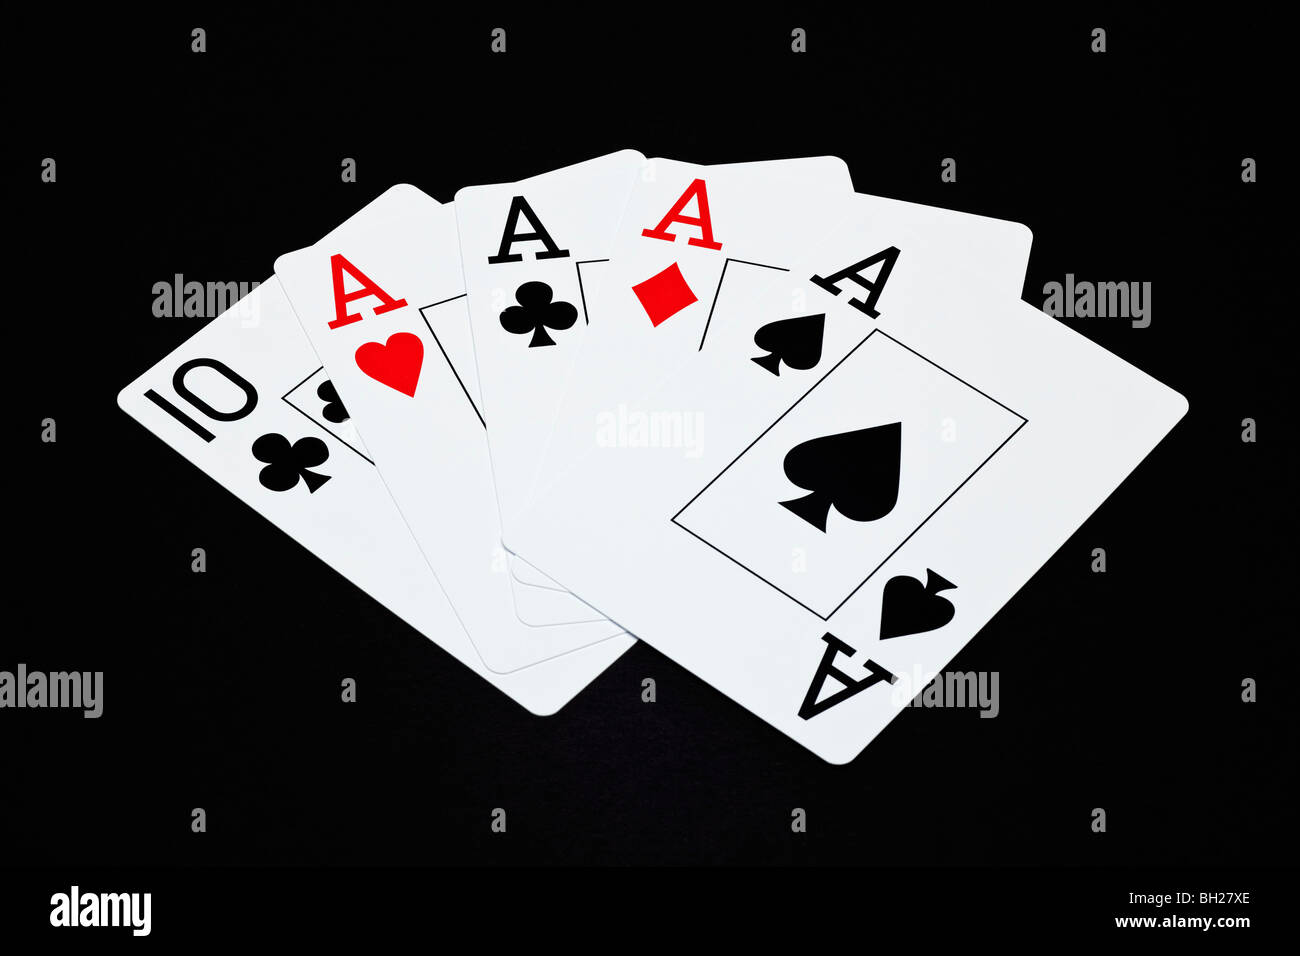 Playing cards showing a Four of a Kind poker hand with aces - Stock Image